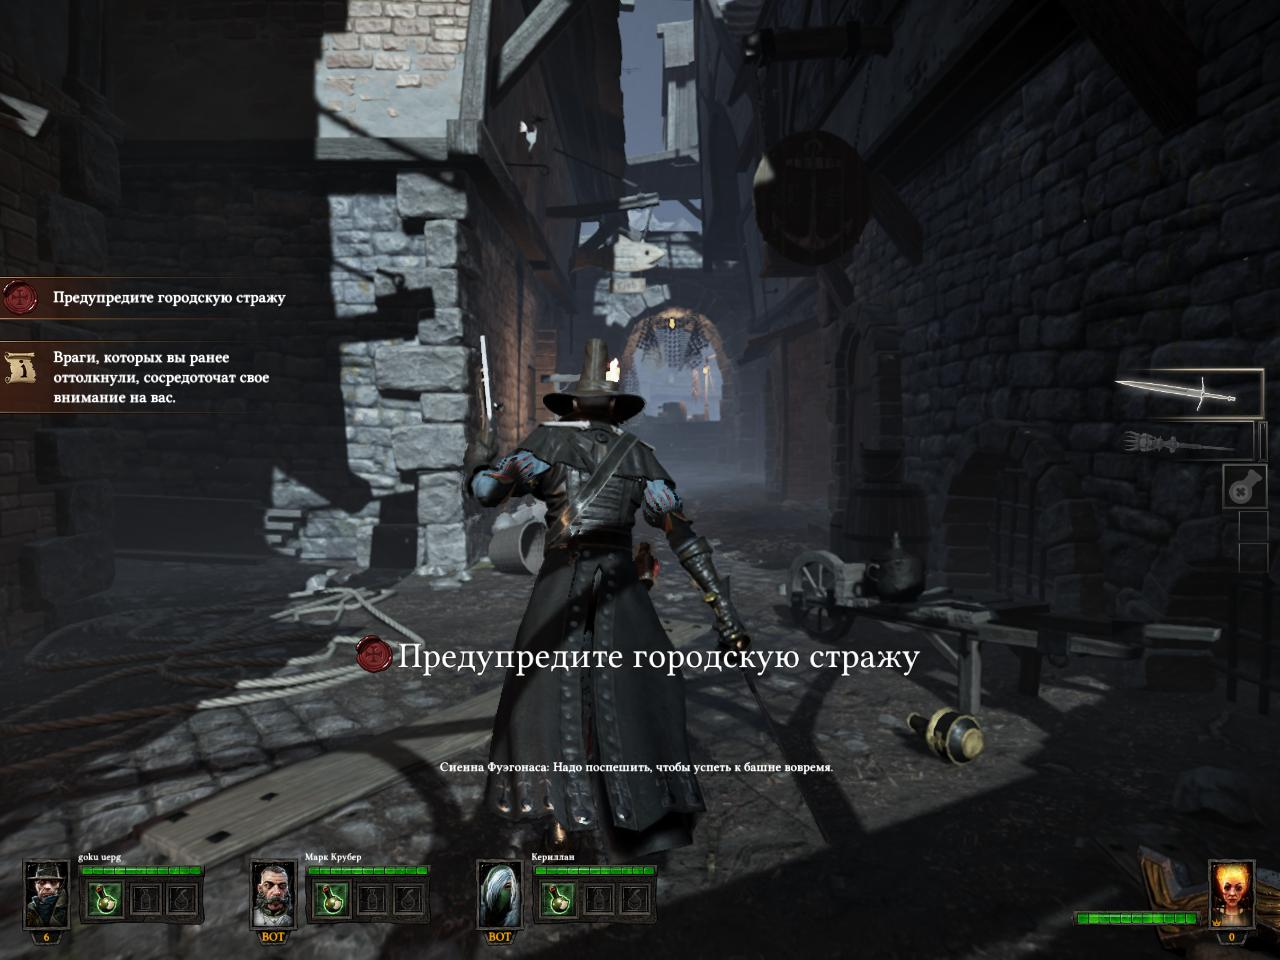 Warhammer: End Times - Vermintide (2015/PC/Repack/Rus|Eng) от SEYTER - Скриншот 1